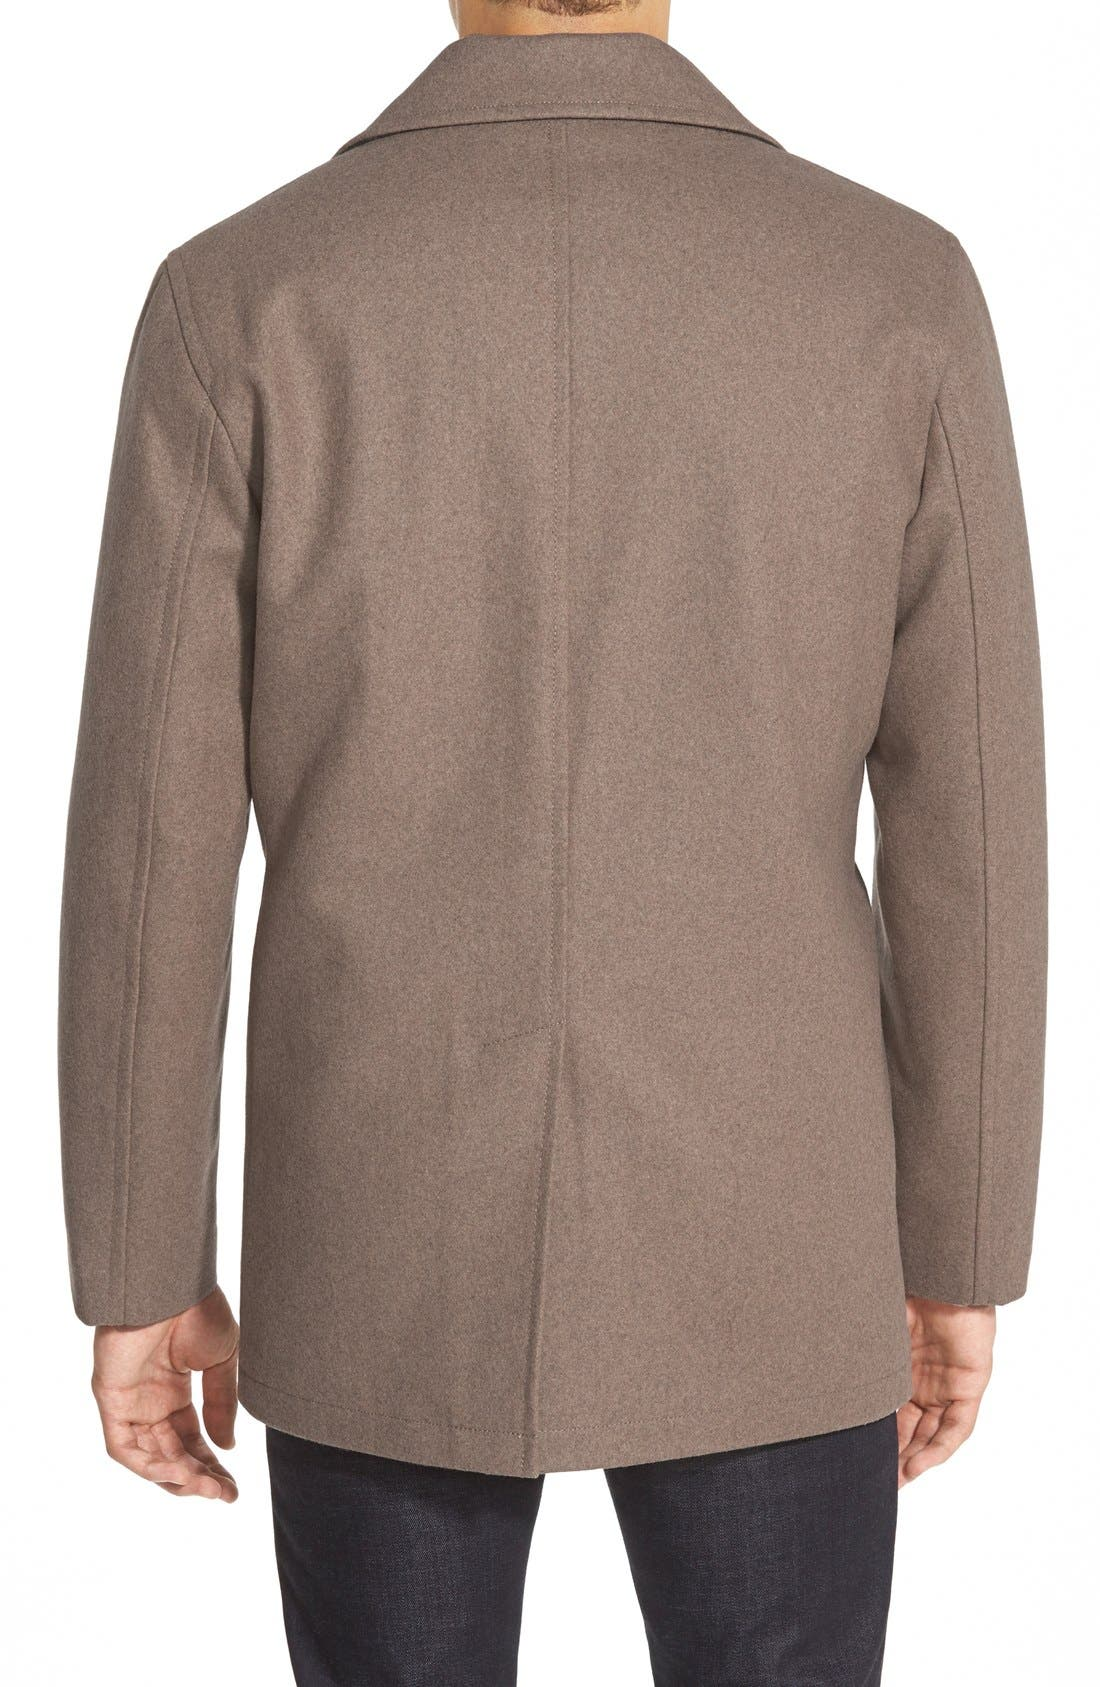 Wool Blend Double Breasted Peacoat,                             Alternate thumbnail 90, color,